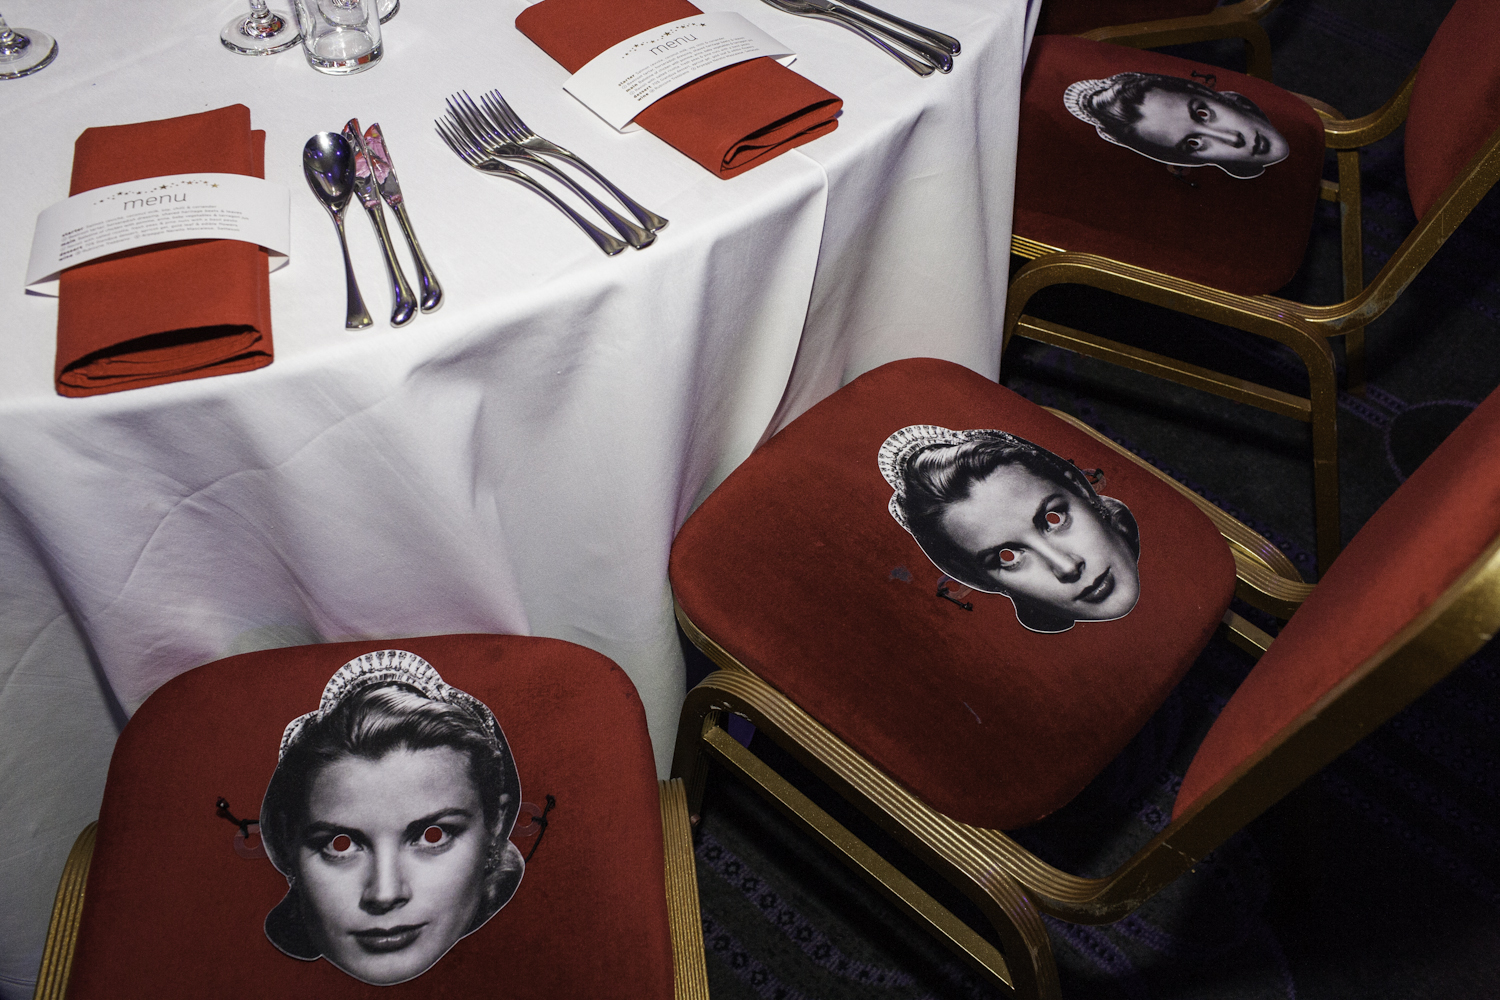 Different famous actors and actresses were on each table as masks.